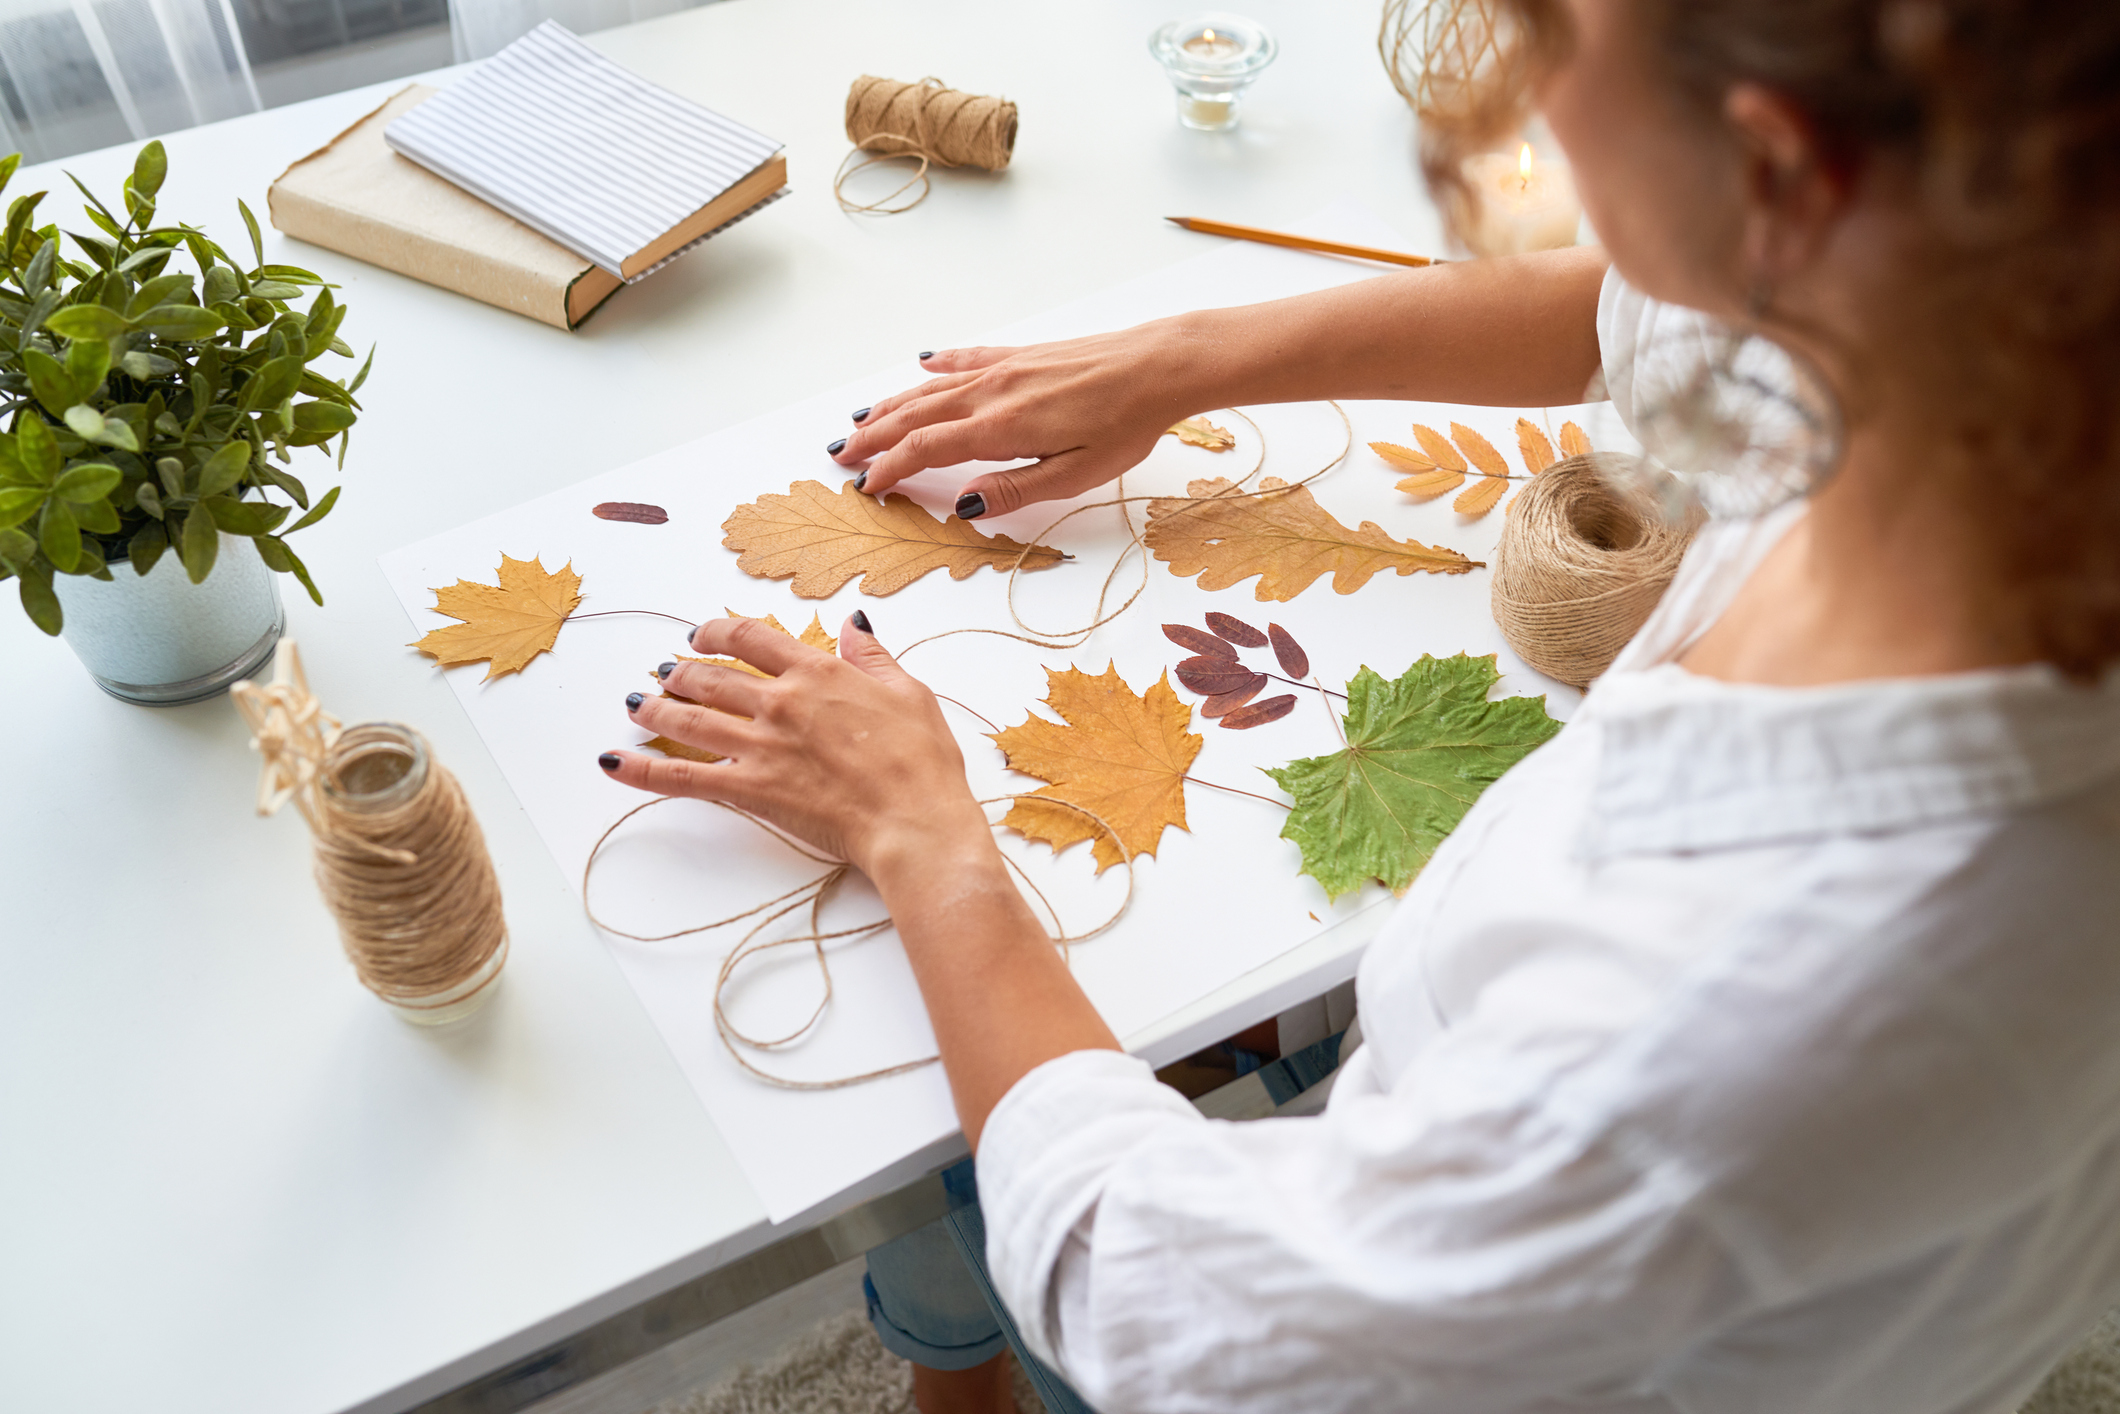 How To Figure Out If Your Hobby Is A Business